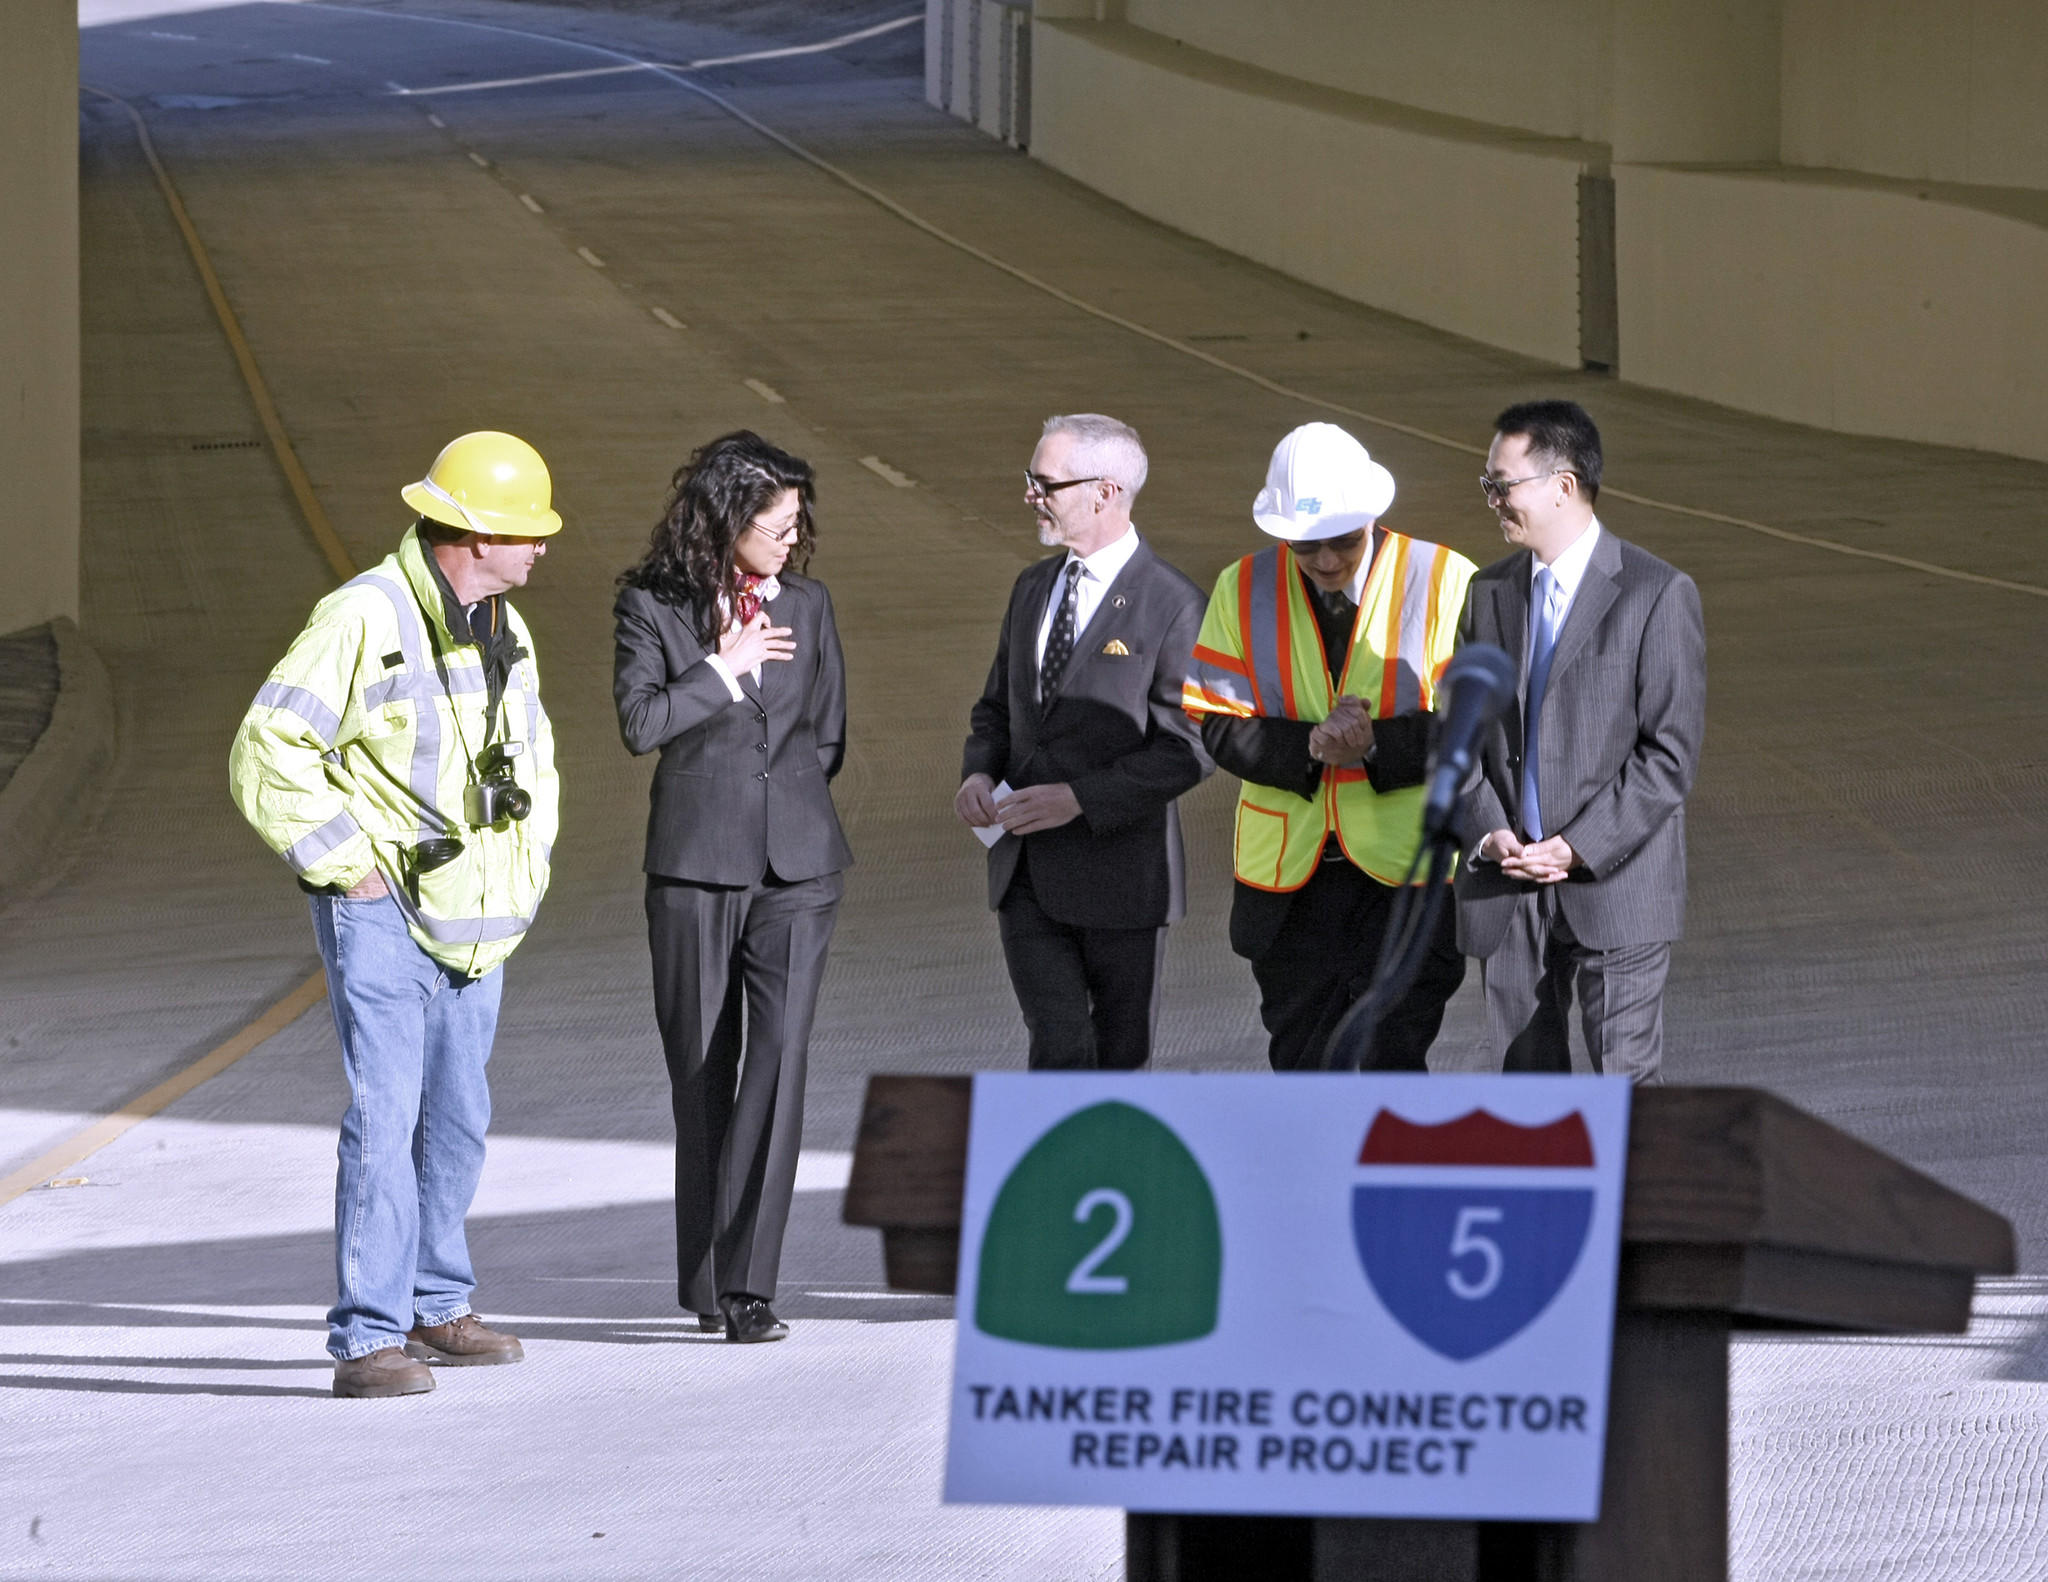 Officials walk the northbound Glendale SR-2 freeway connector to the northbound Golden State I-5 freeway in Echo Park that was completed and reopened by the California Department of Transportation on Friday, January 10, 2014. Known as the 2/5 Tanker Fire Connector Repair Project, it took six months for this section of the tunnel to reopen after the July 13, 2013 accident where a gasoline tanker flipped over and caught fire.